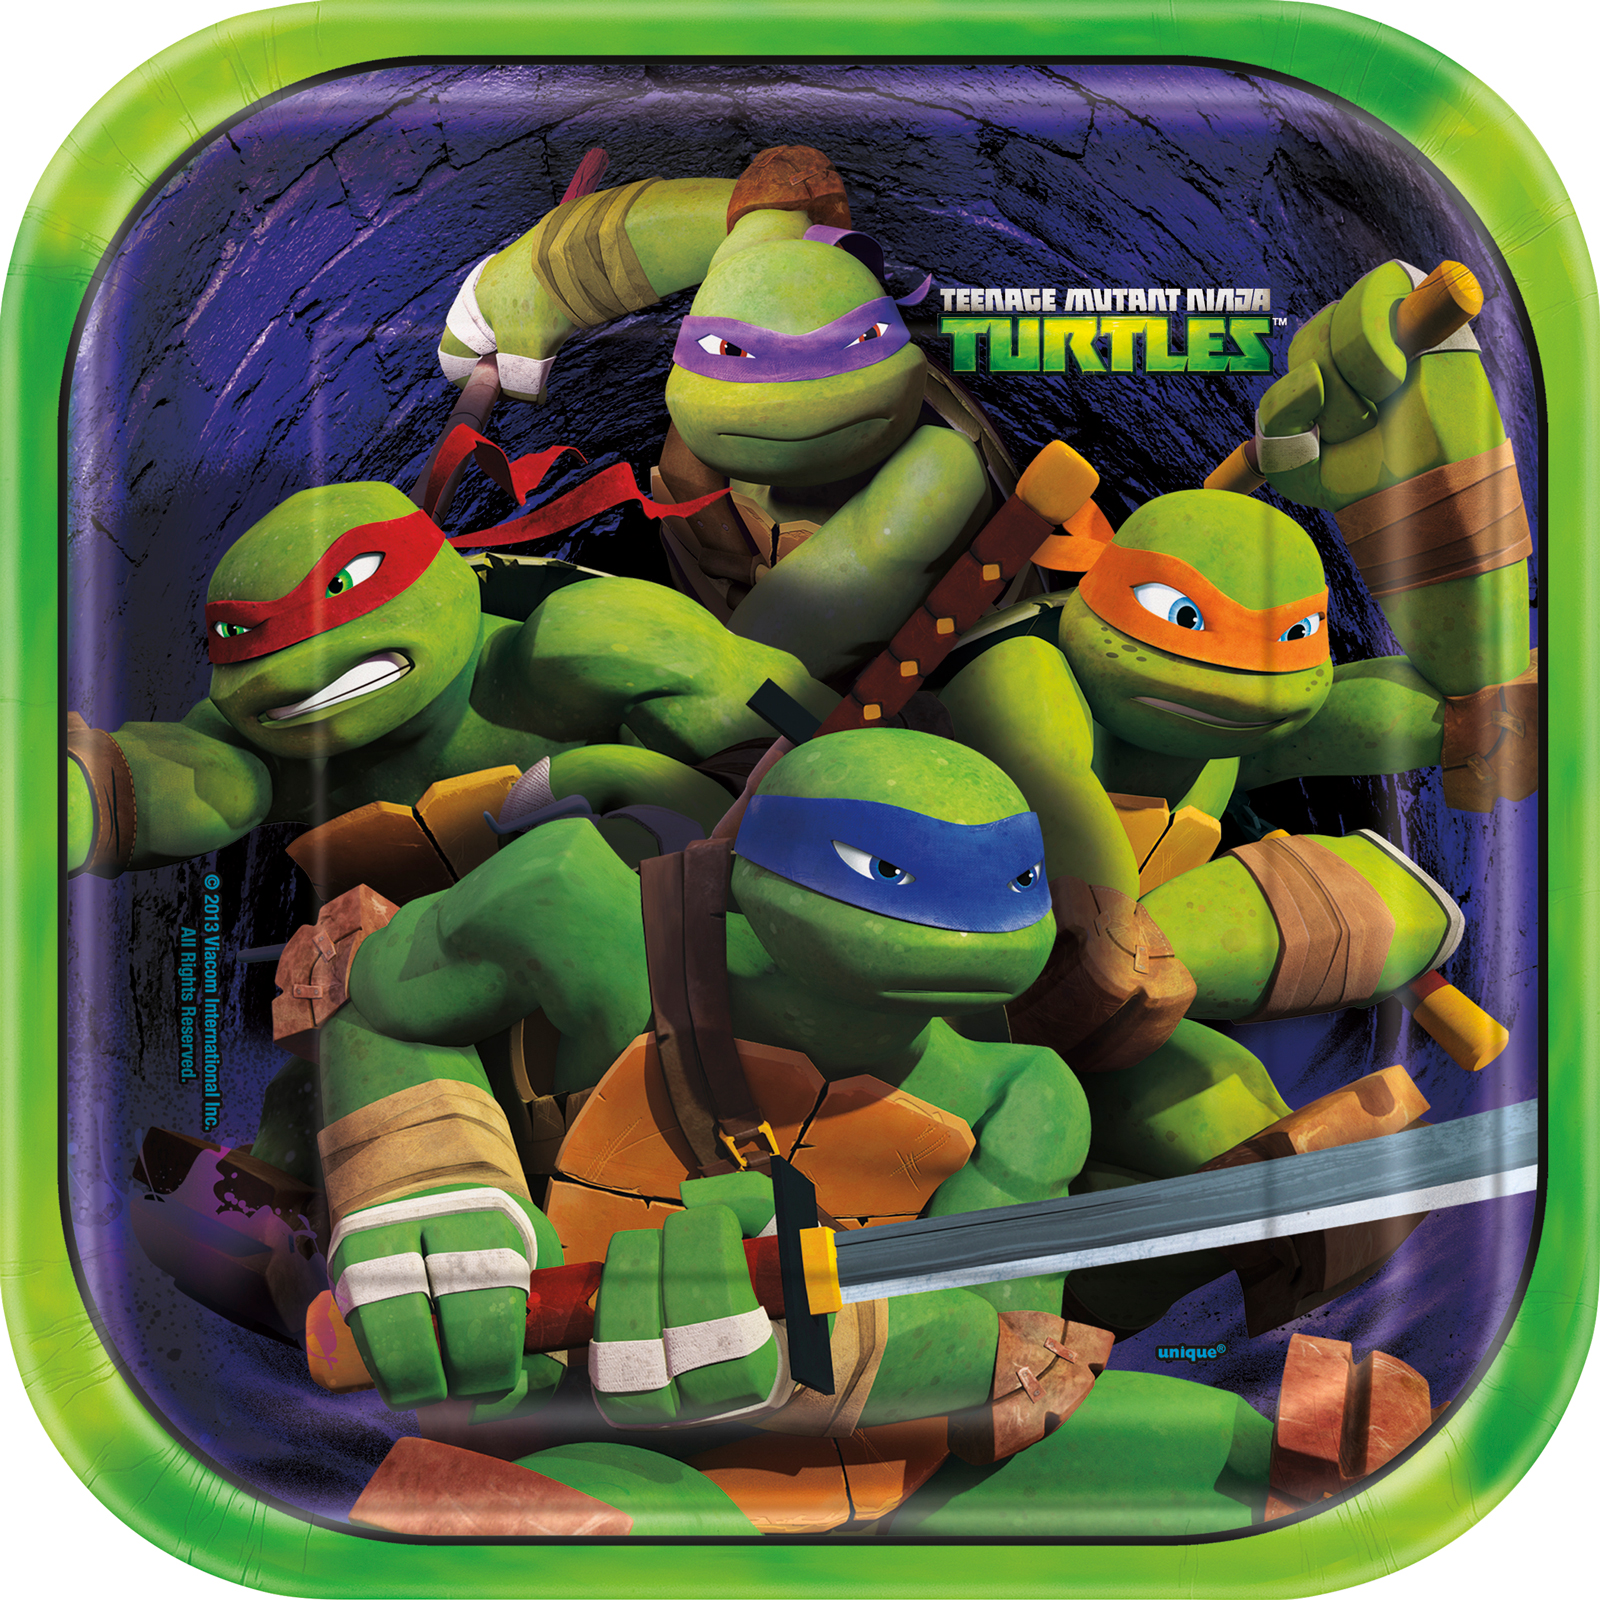 teenage mutant ninja turtles party in a box for 8, Party invitations